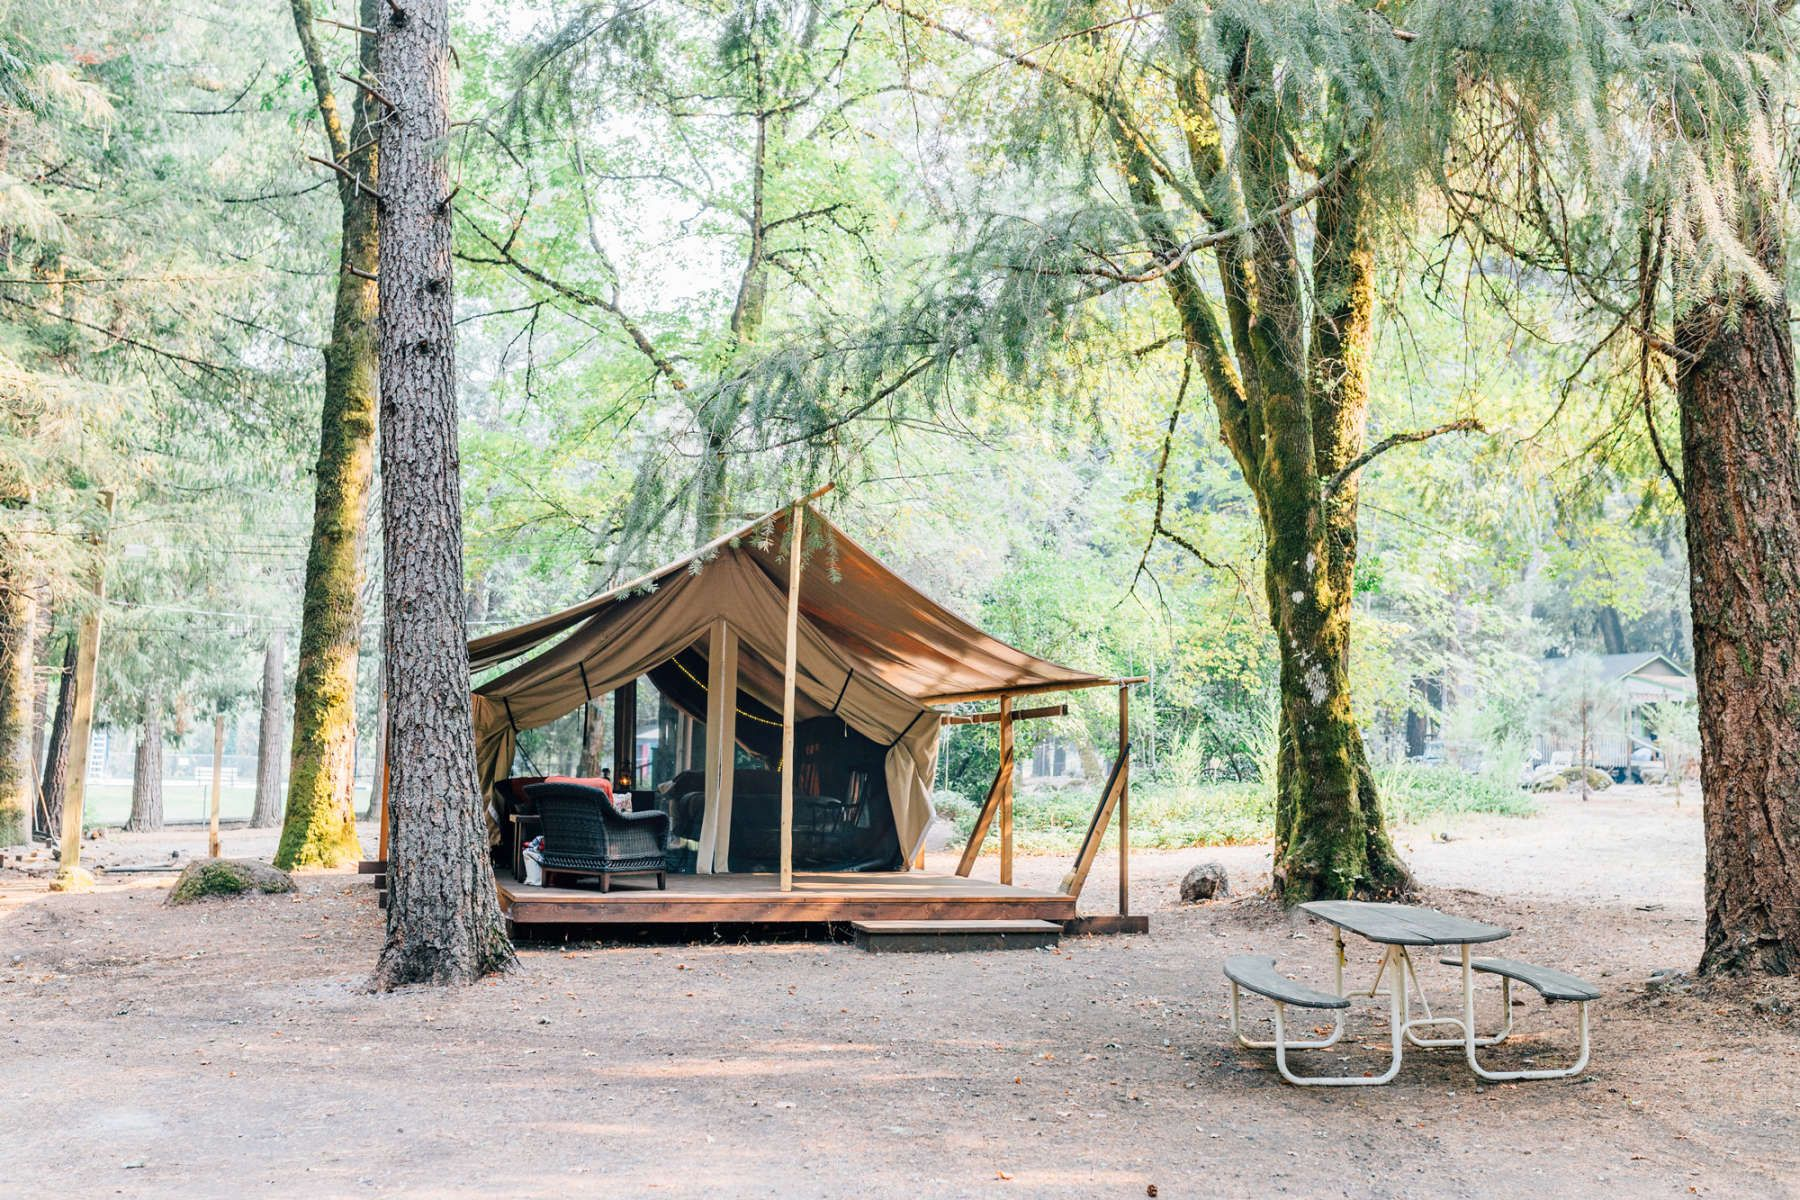 Furnished Glamping tent Tent glamping, Glamping, Pine grove